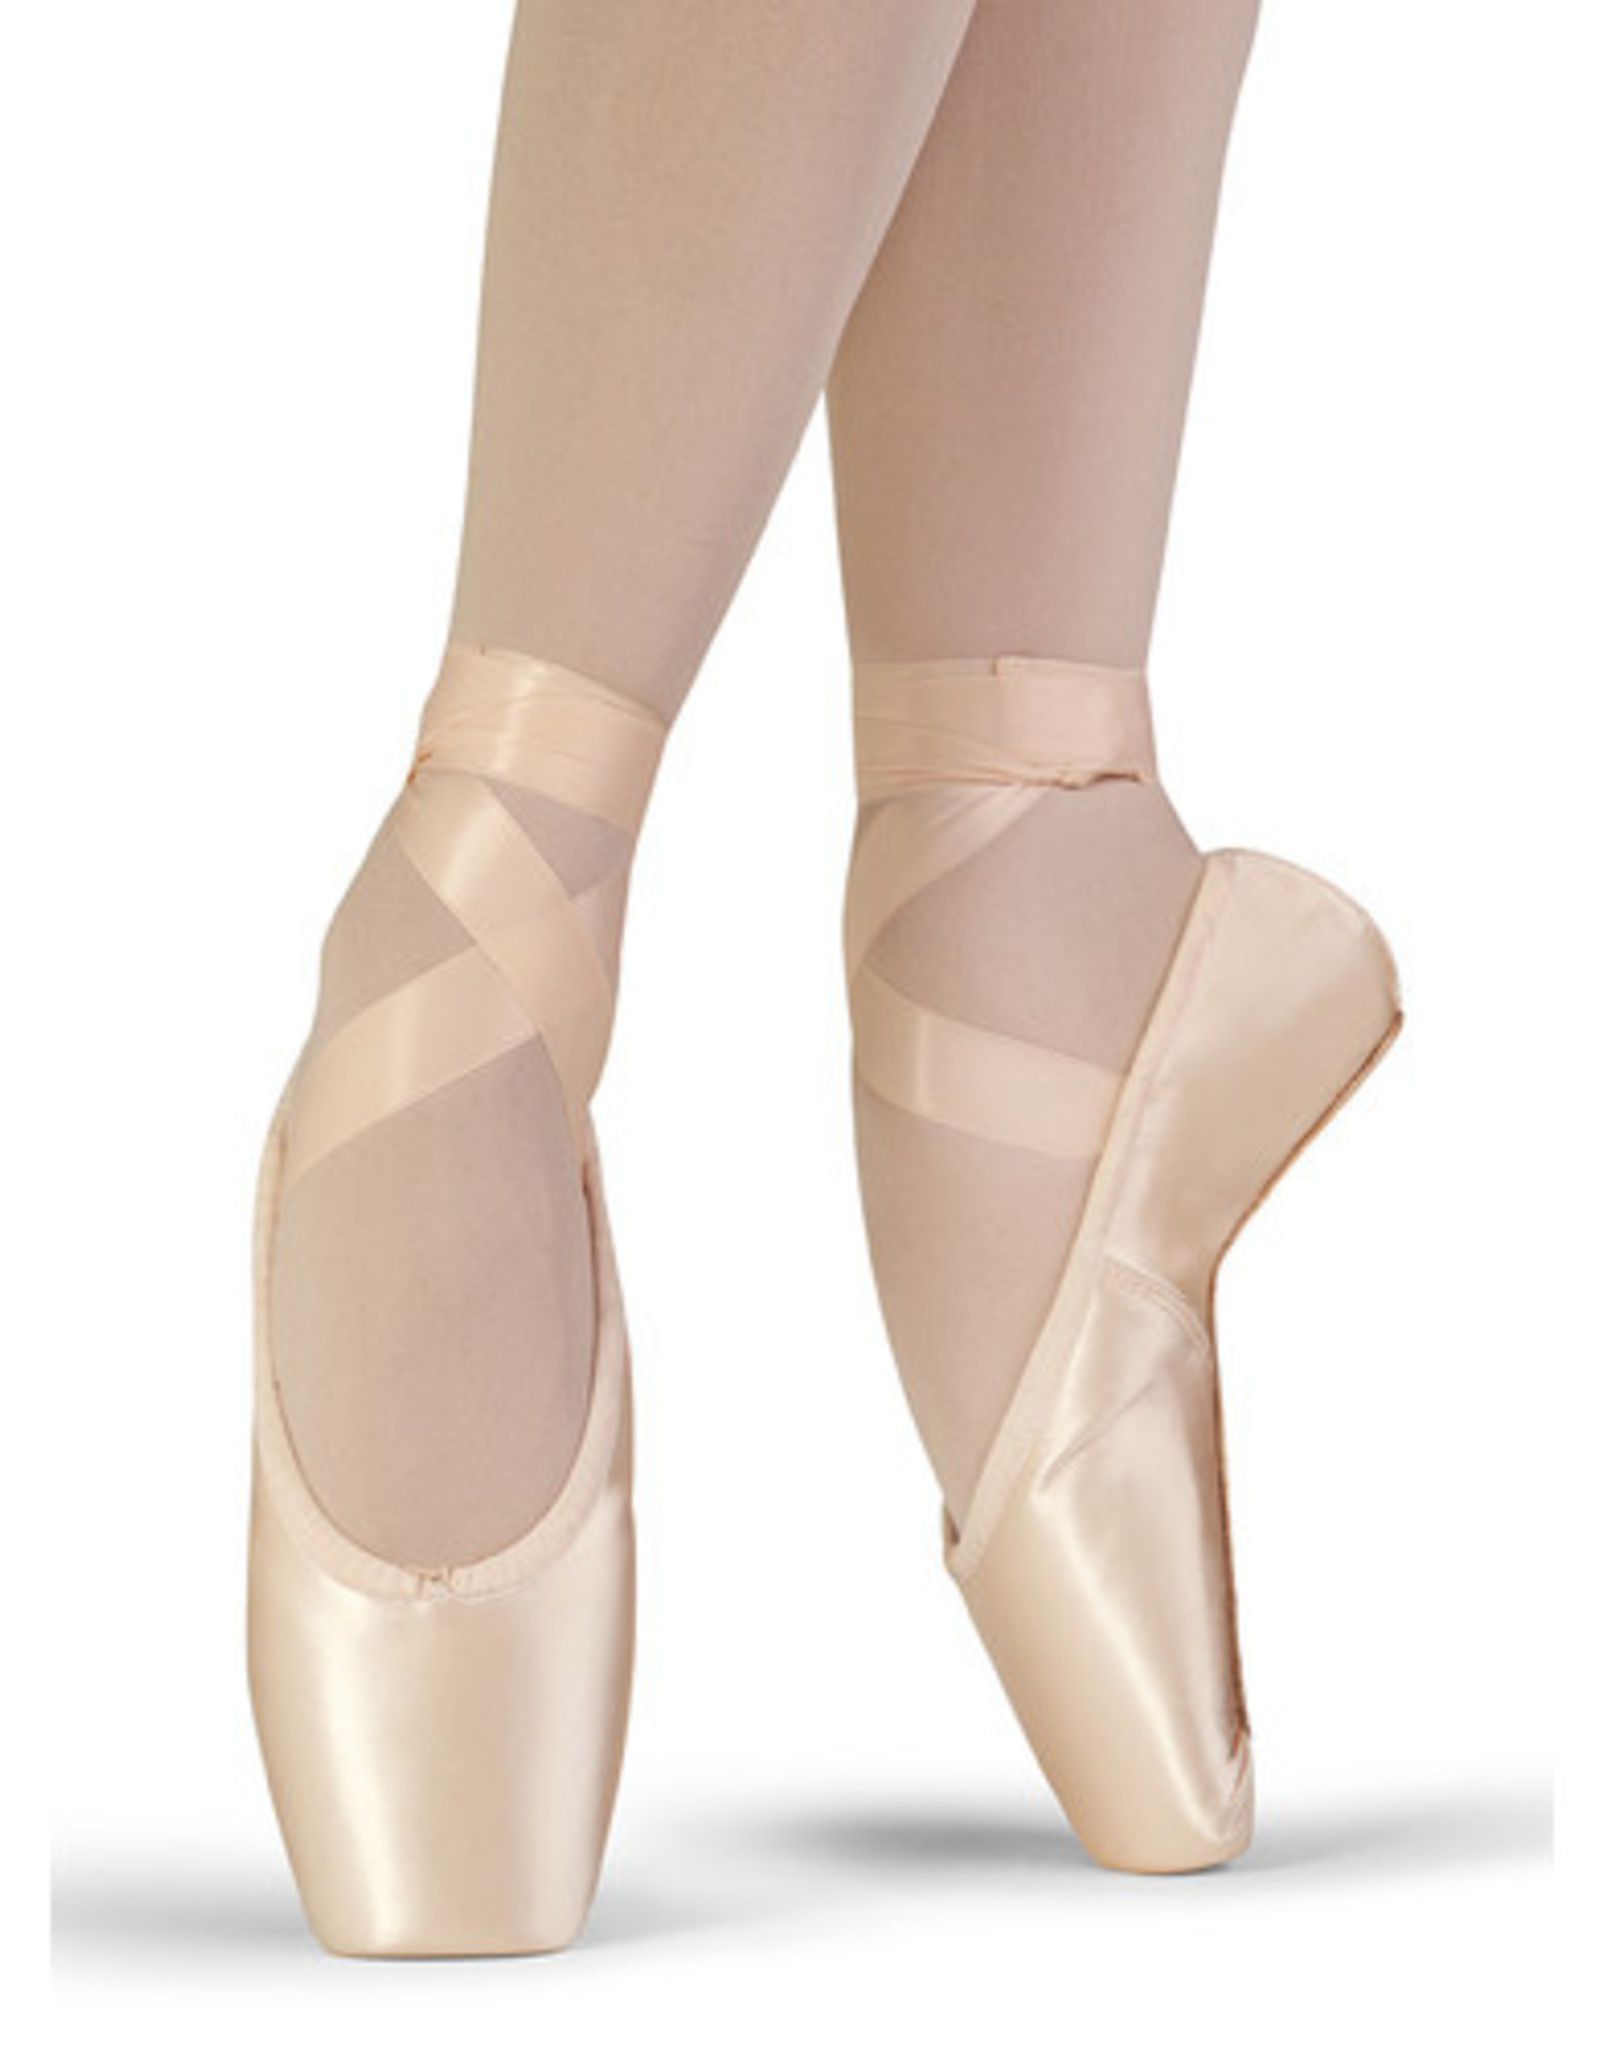 Bloch Bloch Synthesis Pointe Shoe S0175L